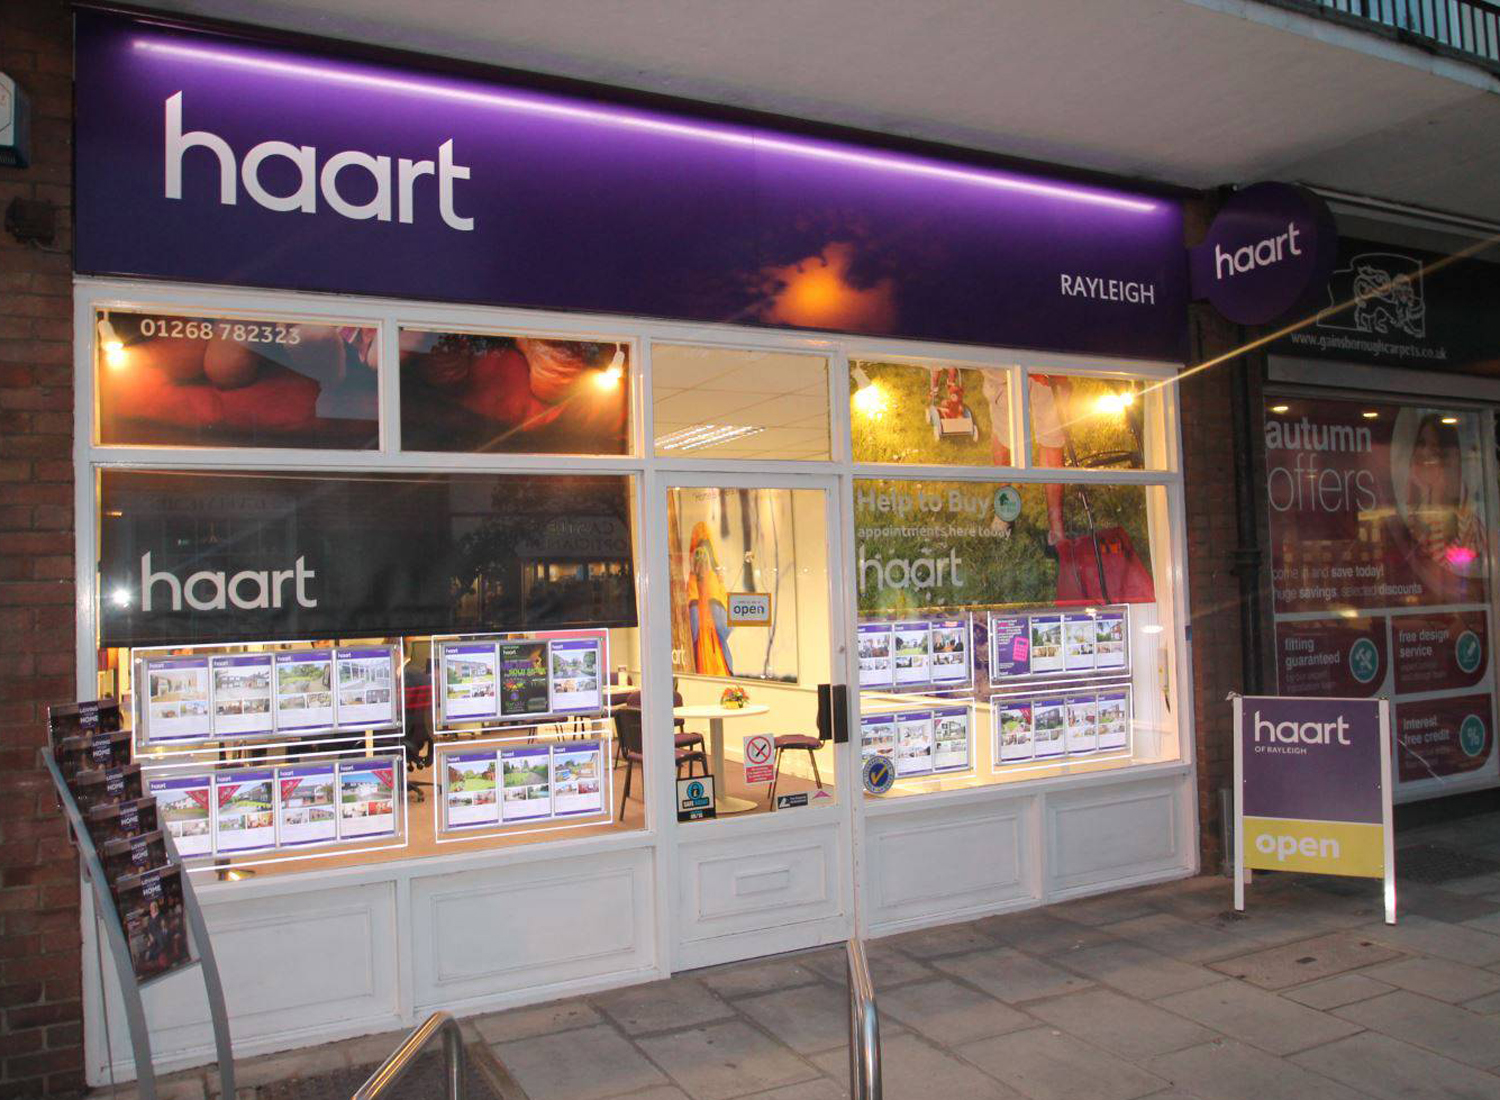 haart letting agents Rayleigh - Rayleigh, Essex SS6 7JD - 01268 772917 | ShowMeLocal.com